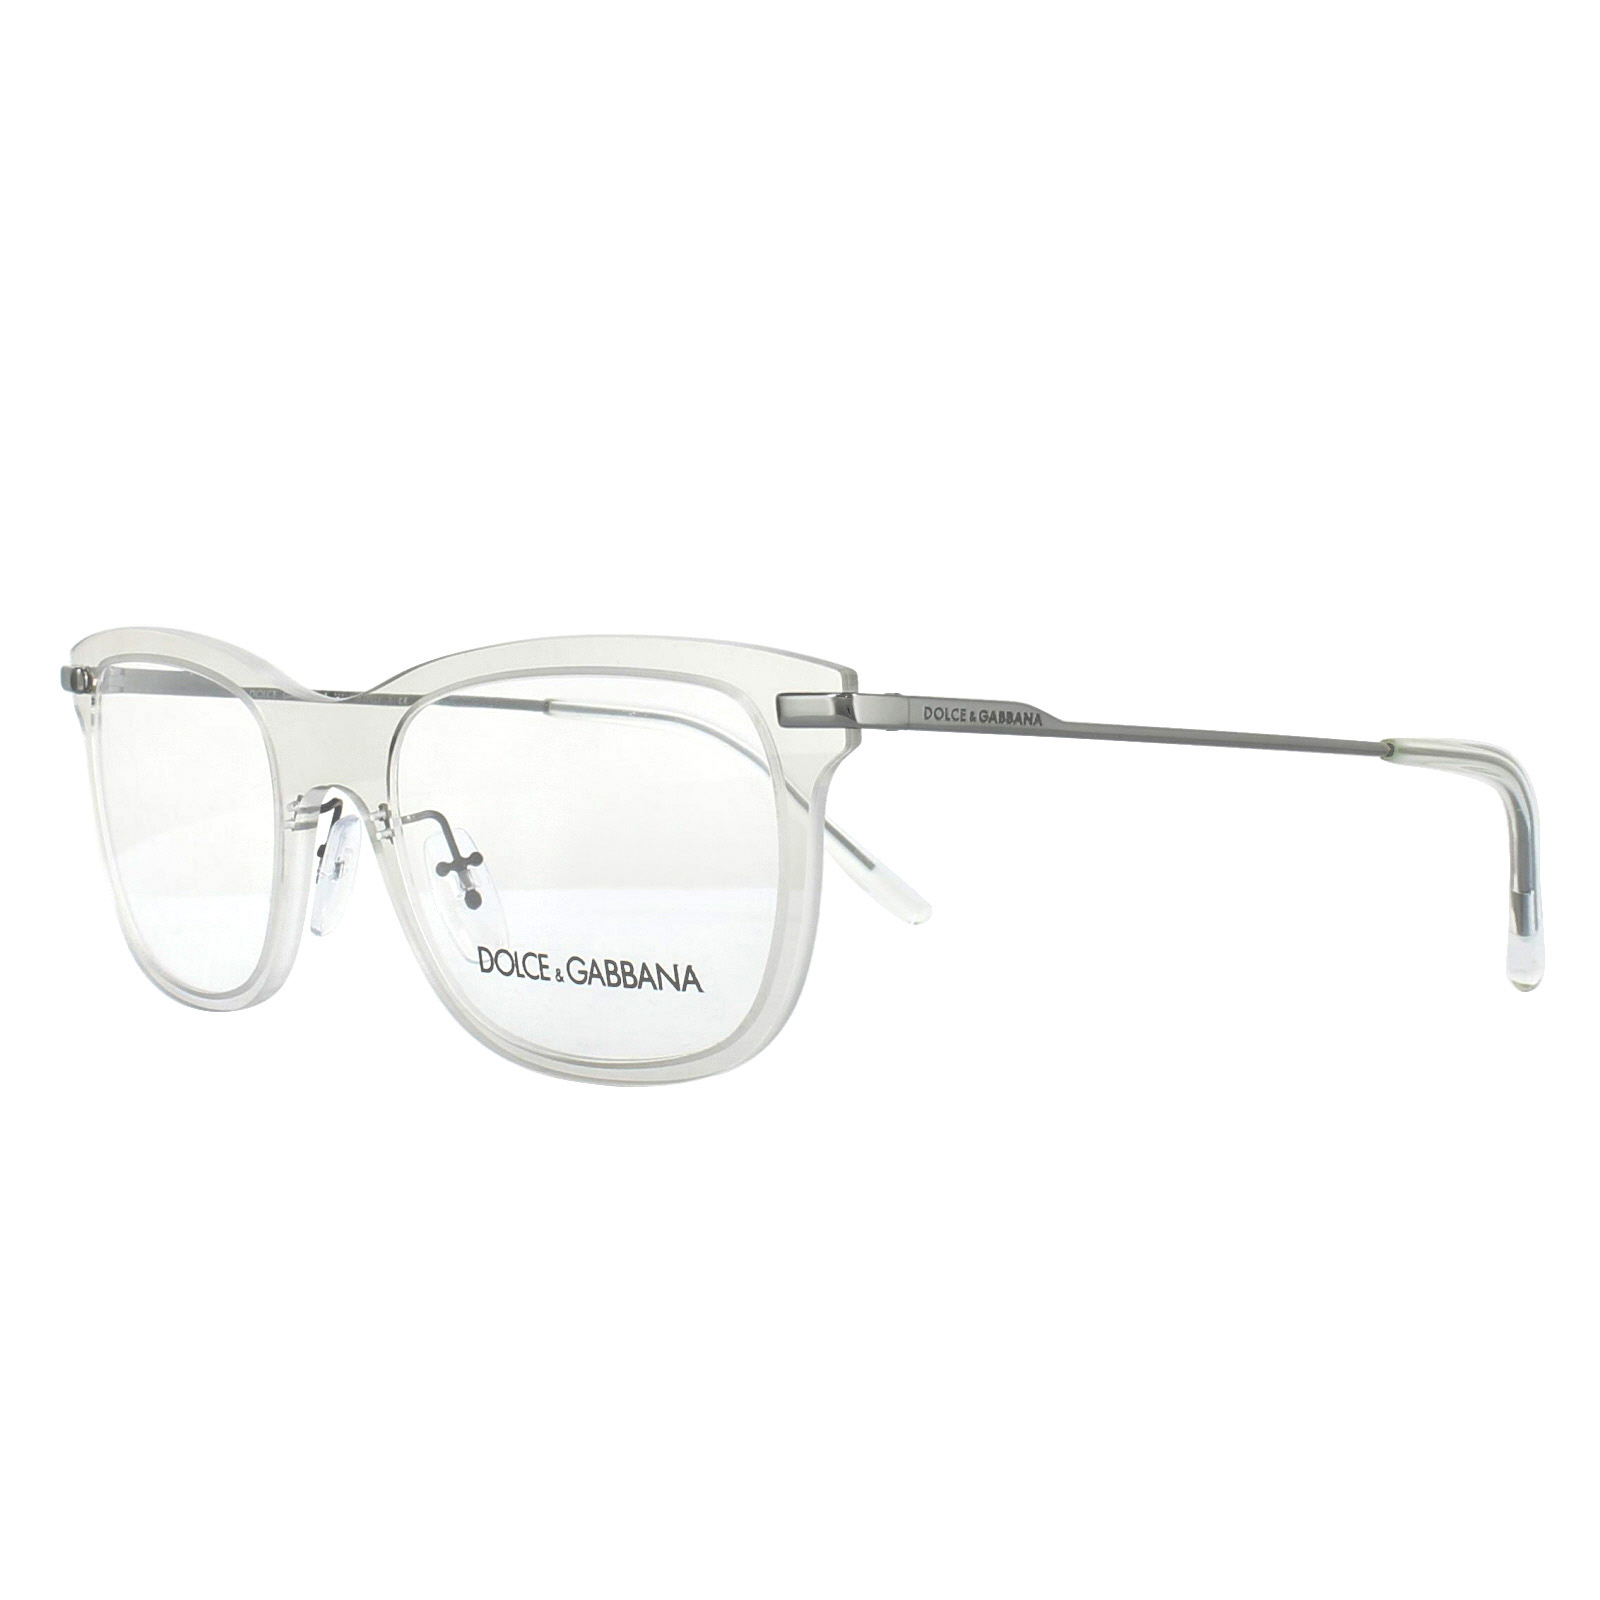 faff7b41903 Sentinel Dolce   Gabbana Glasses Frames DG 1293 04 Clear 51mm Mens